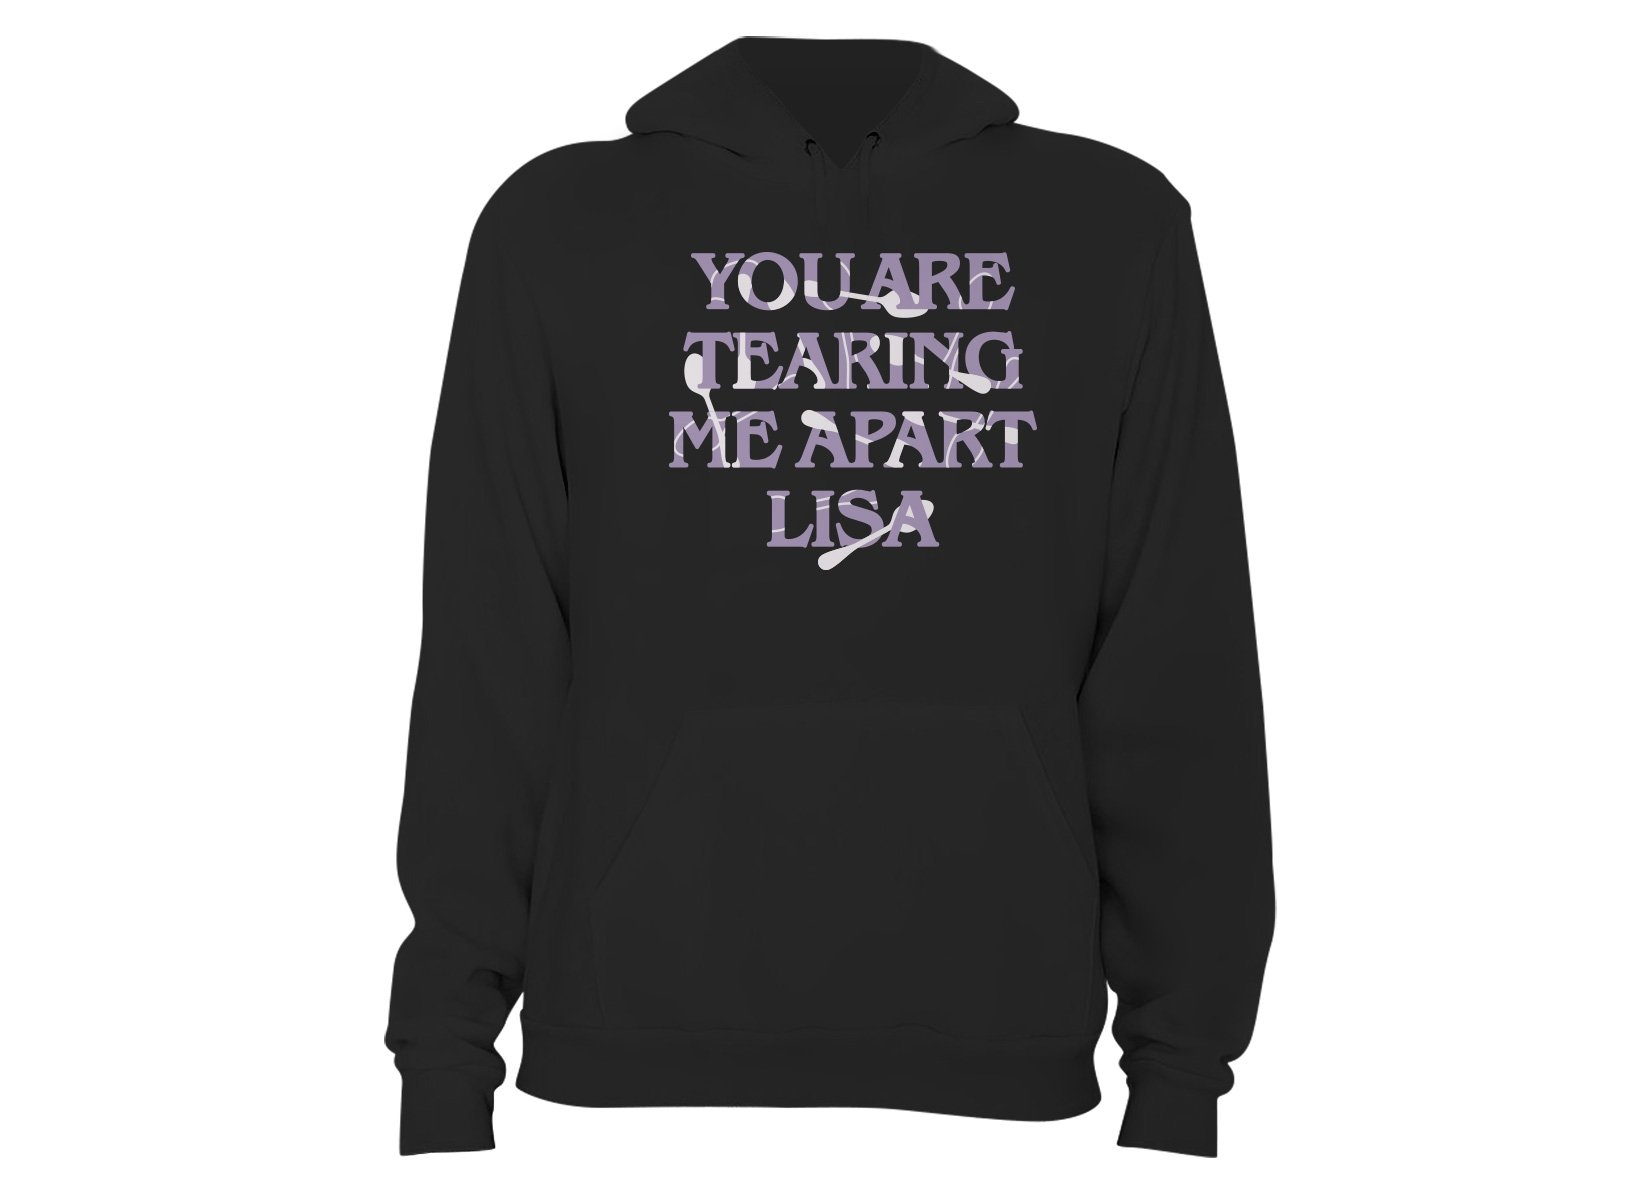 You Are Tearing Me Apart Lisa on Hoodie